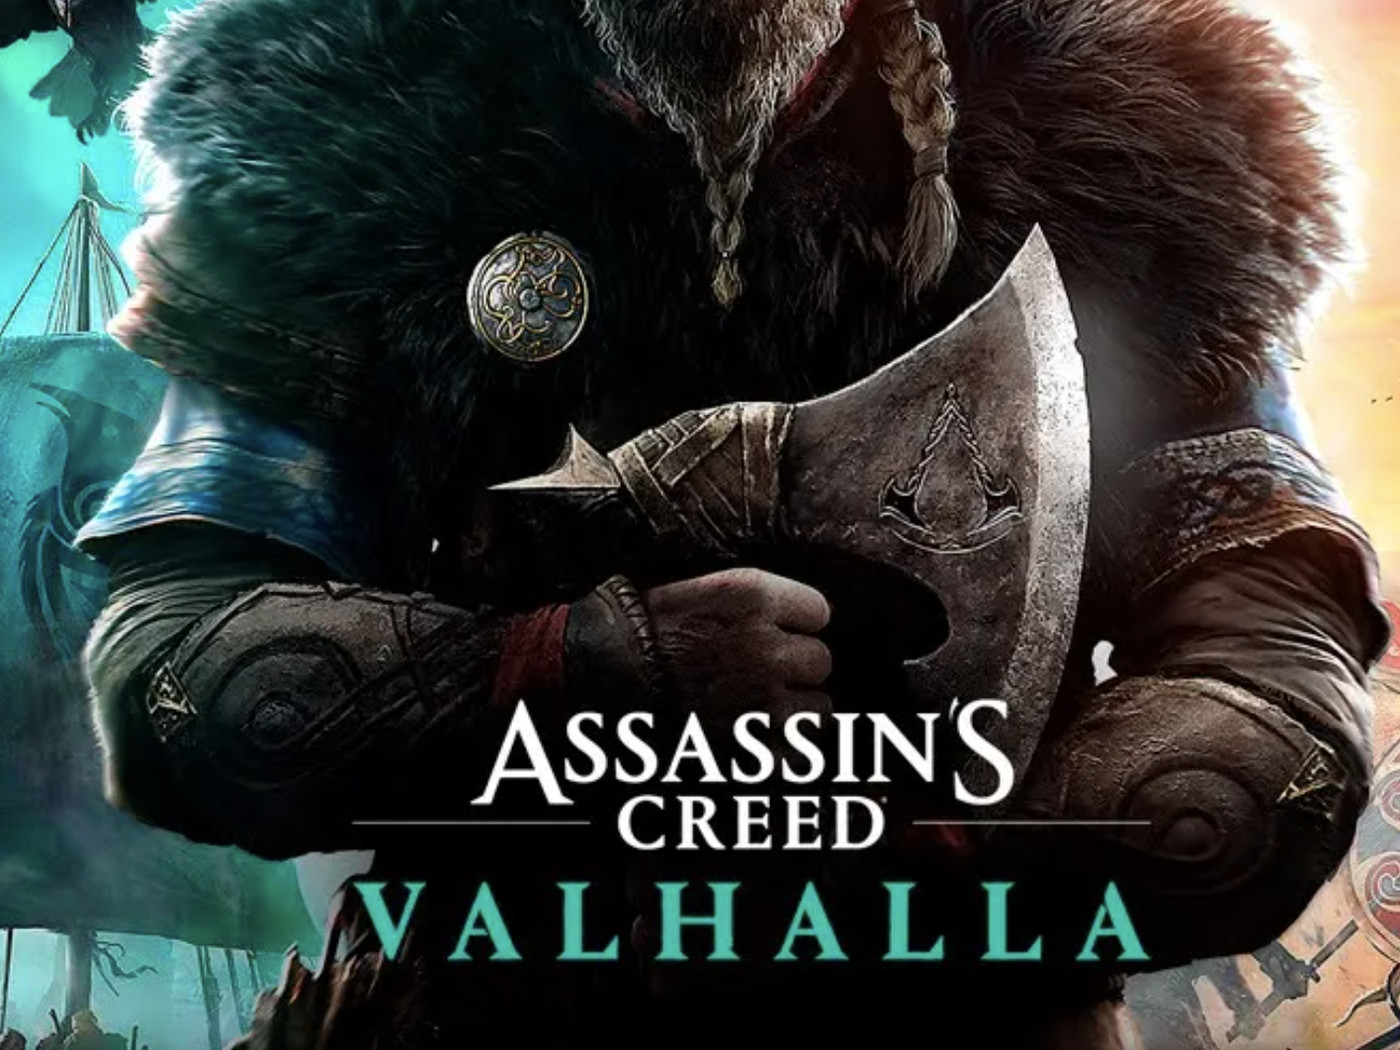 Assassins Creed Valhalla is Assassins Creed with vikings   The Verge 1400x1050